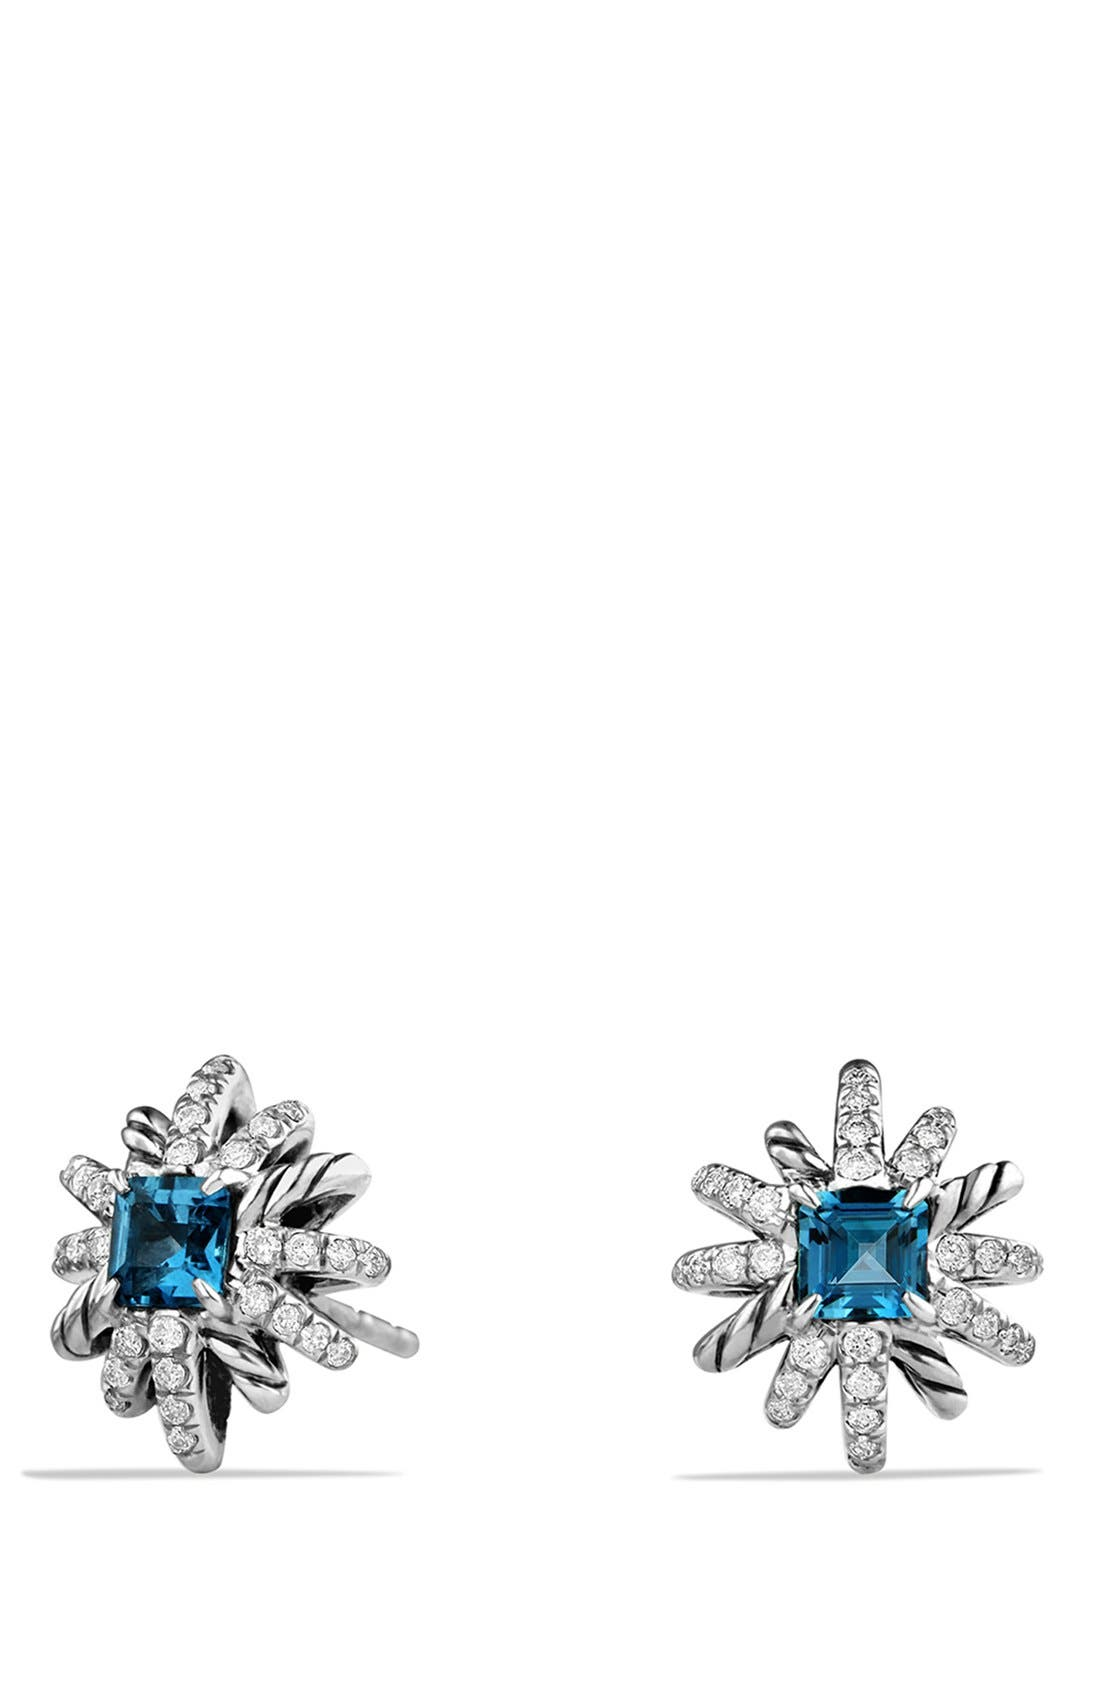 'Starburst' Earrings,                             Main thumbnail 1, color,                             HAMPTON BLUE TOPAZ